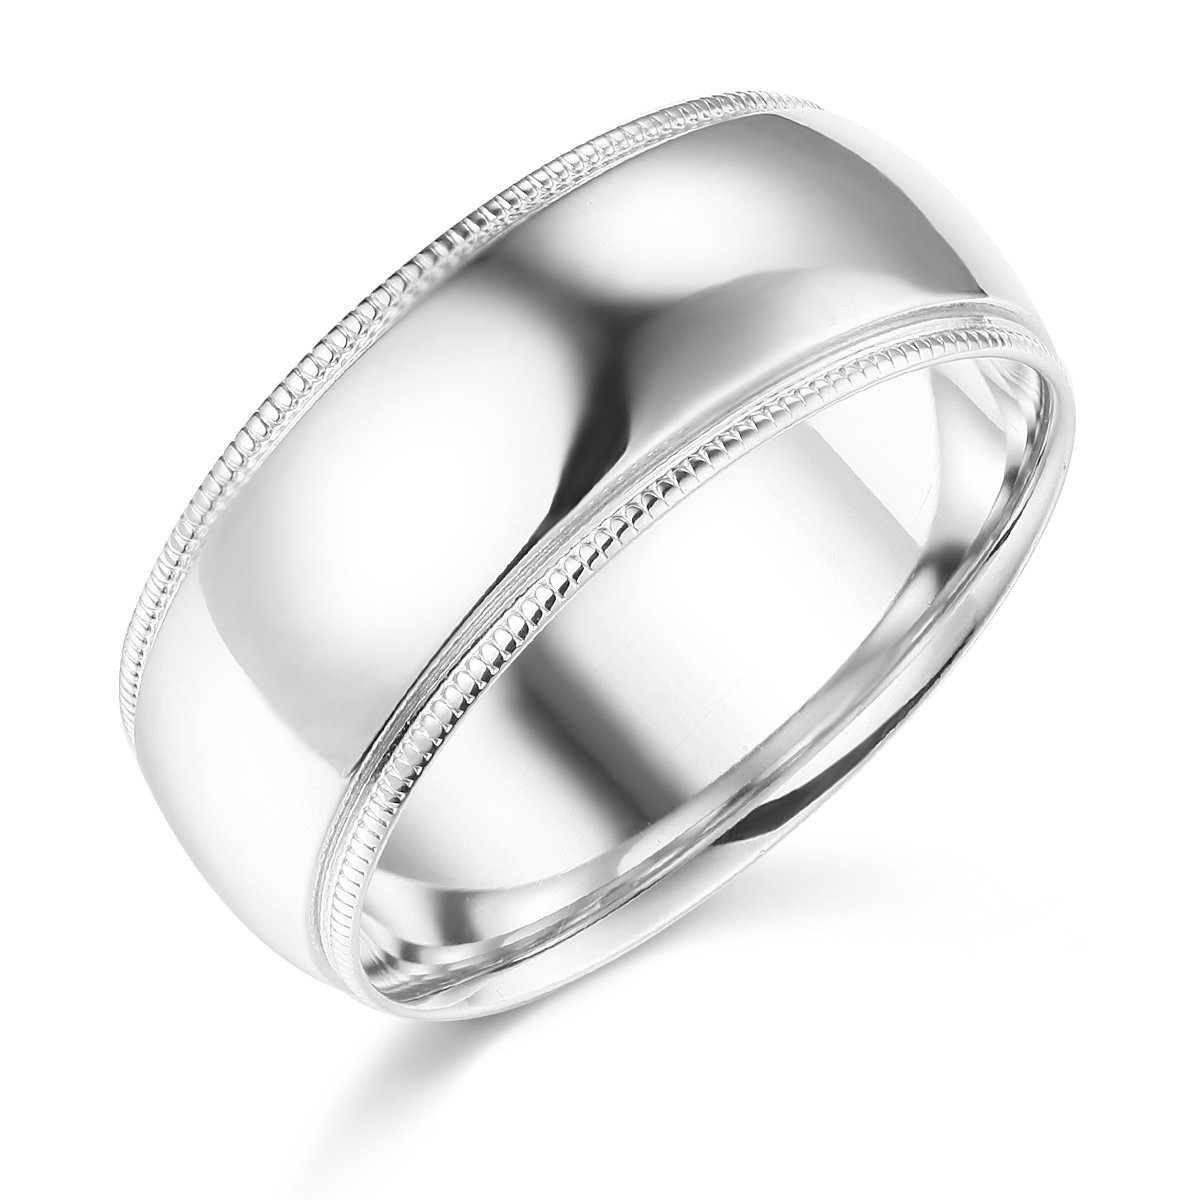 Wellingsale Mens 14k White Gold Solid 8mm COMFORT FIT Milgrain Traditional Wedding Band Ring - Size 10.5